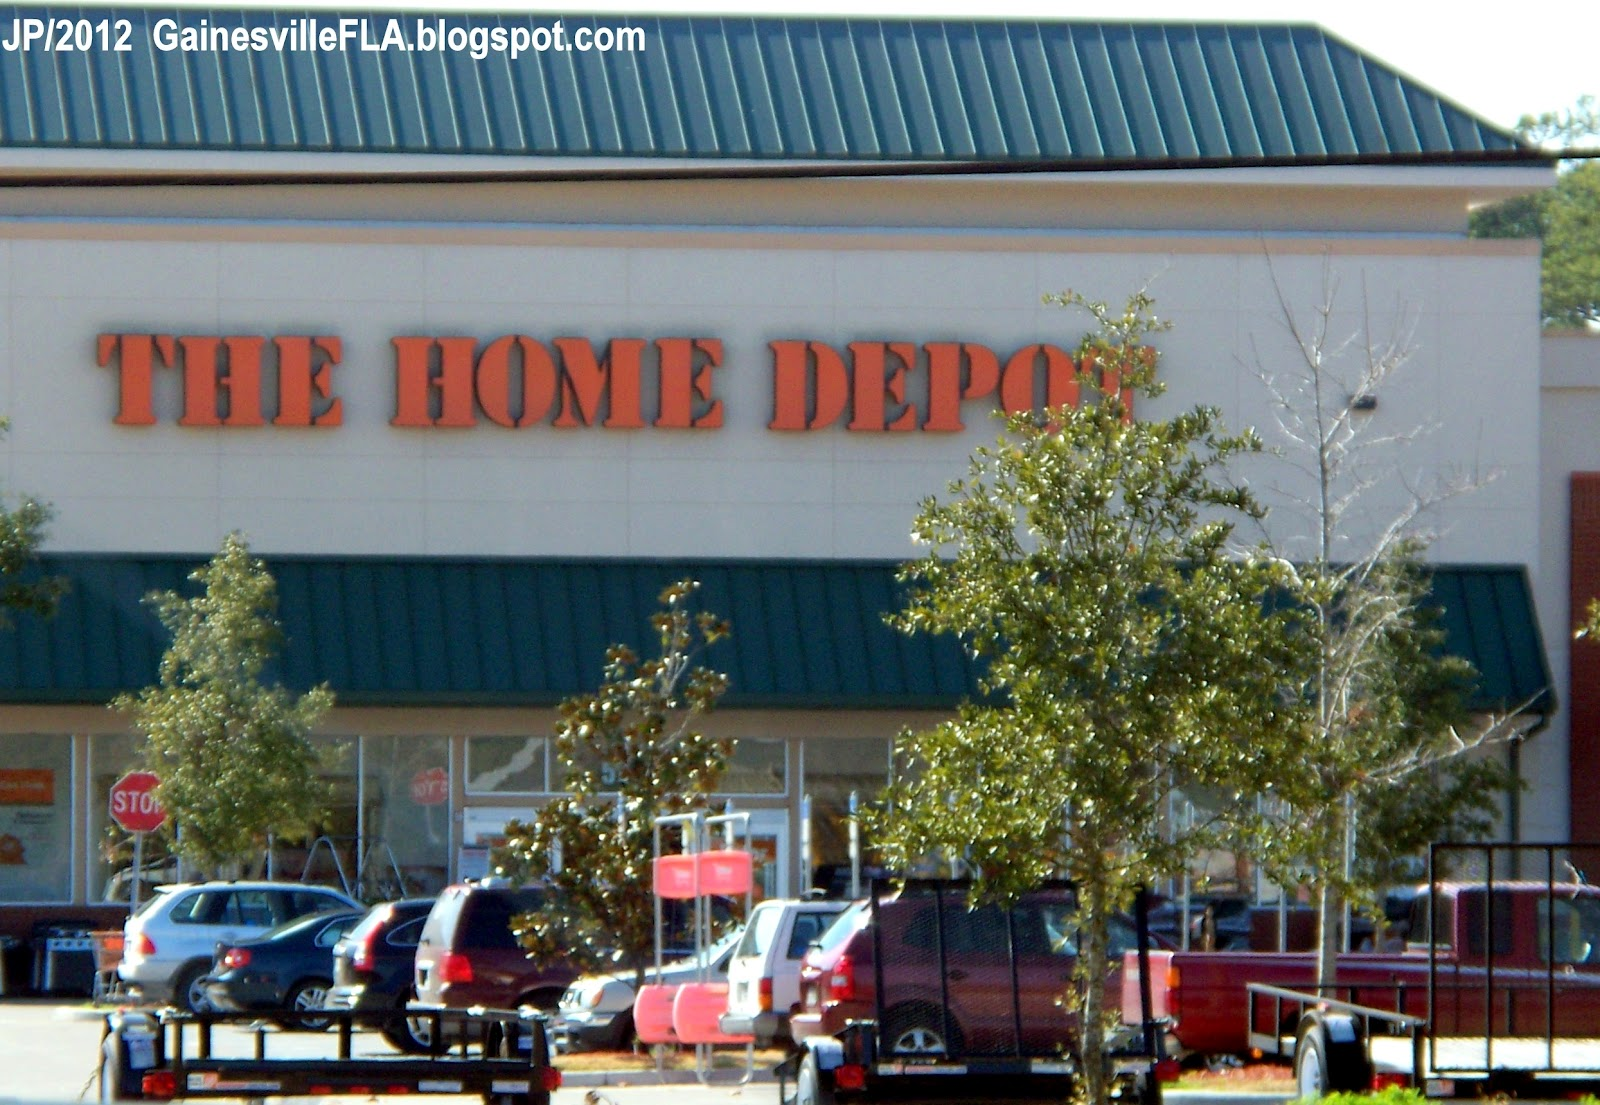 Gainesville florida alachua university restaurant dr for 7 home depot